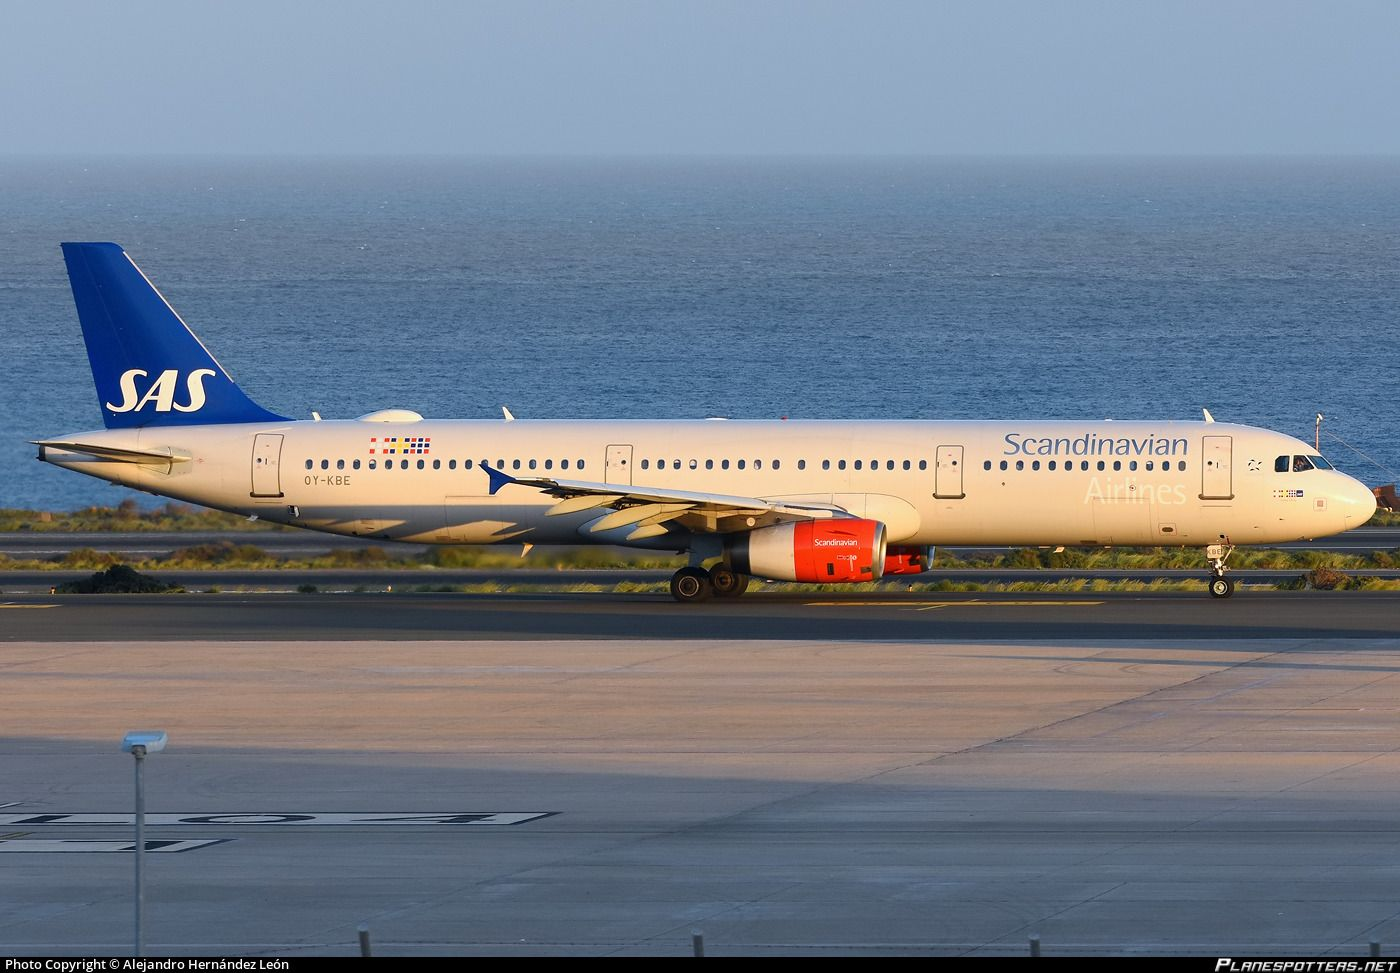 Scandinavian Airlines Sas Airbus A321 232 Oy Kbe Emma Viking At Gran Canaria Gando December 2018 Photo Alejandro Hernandez Leon